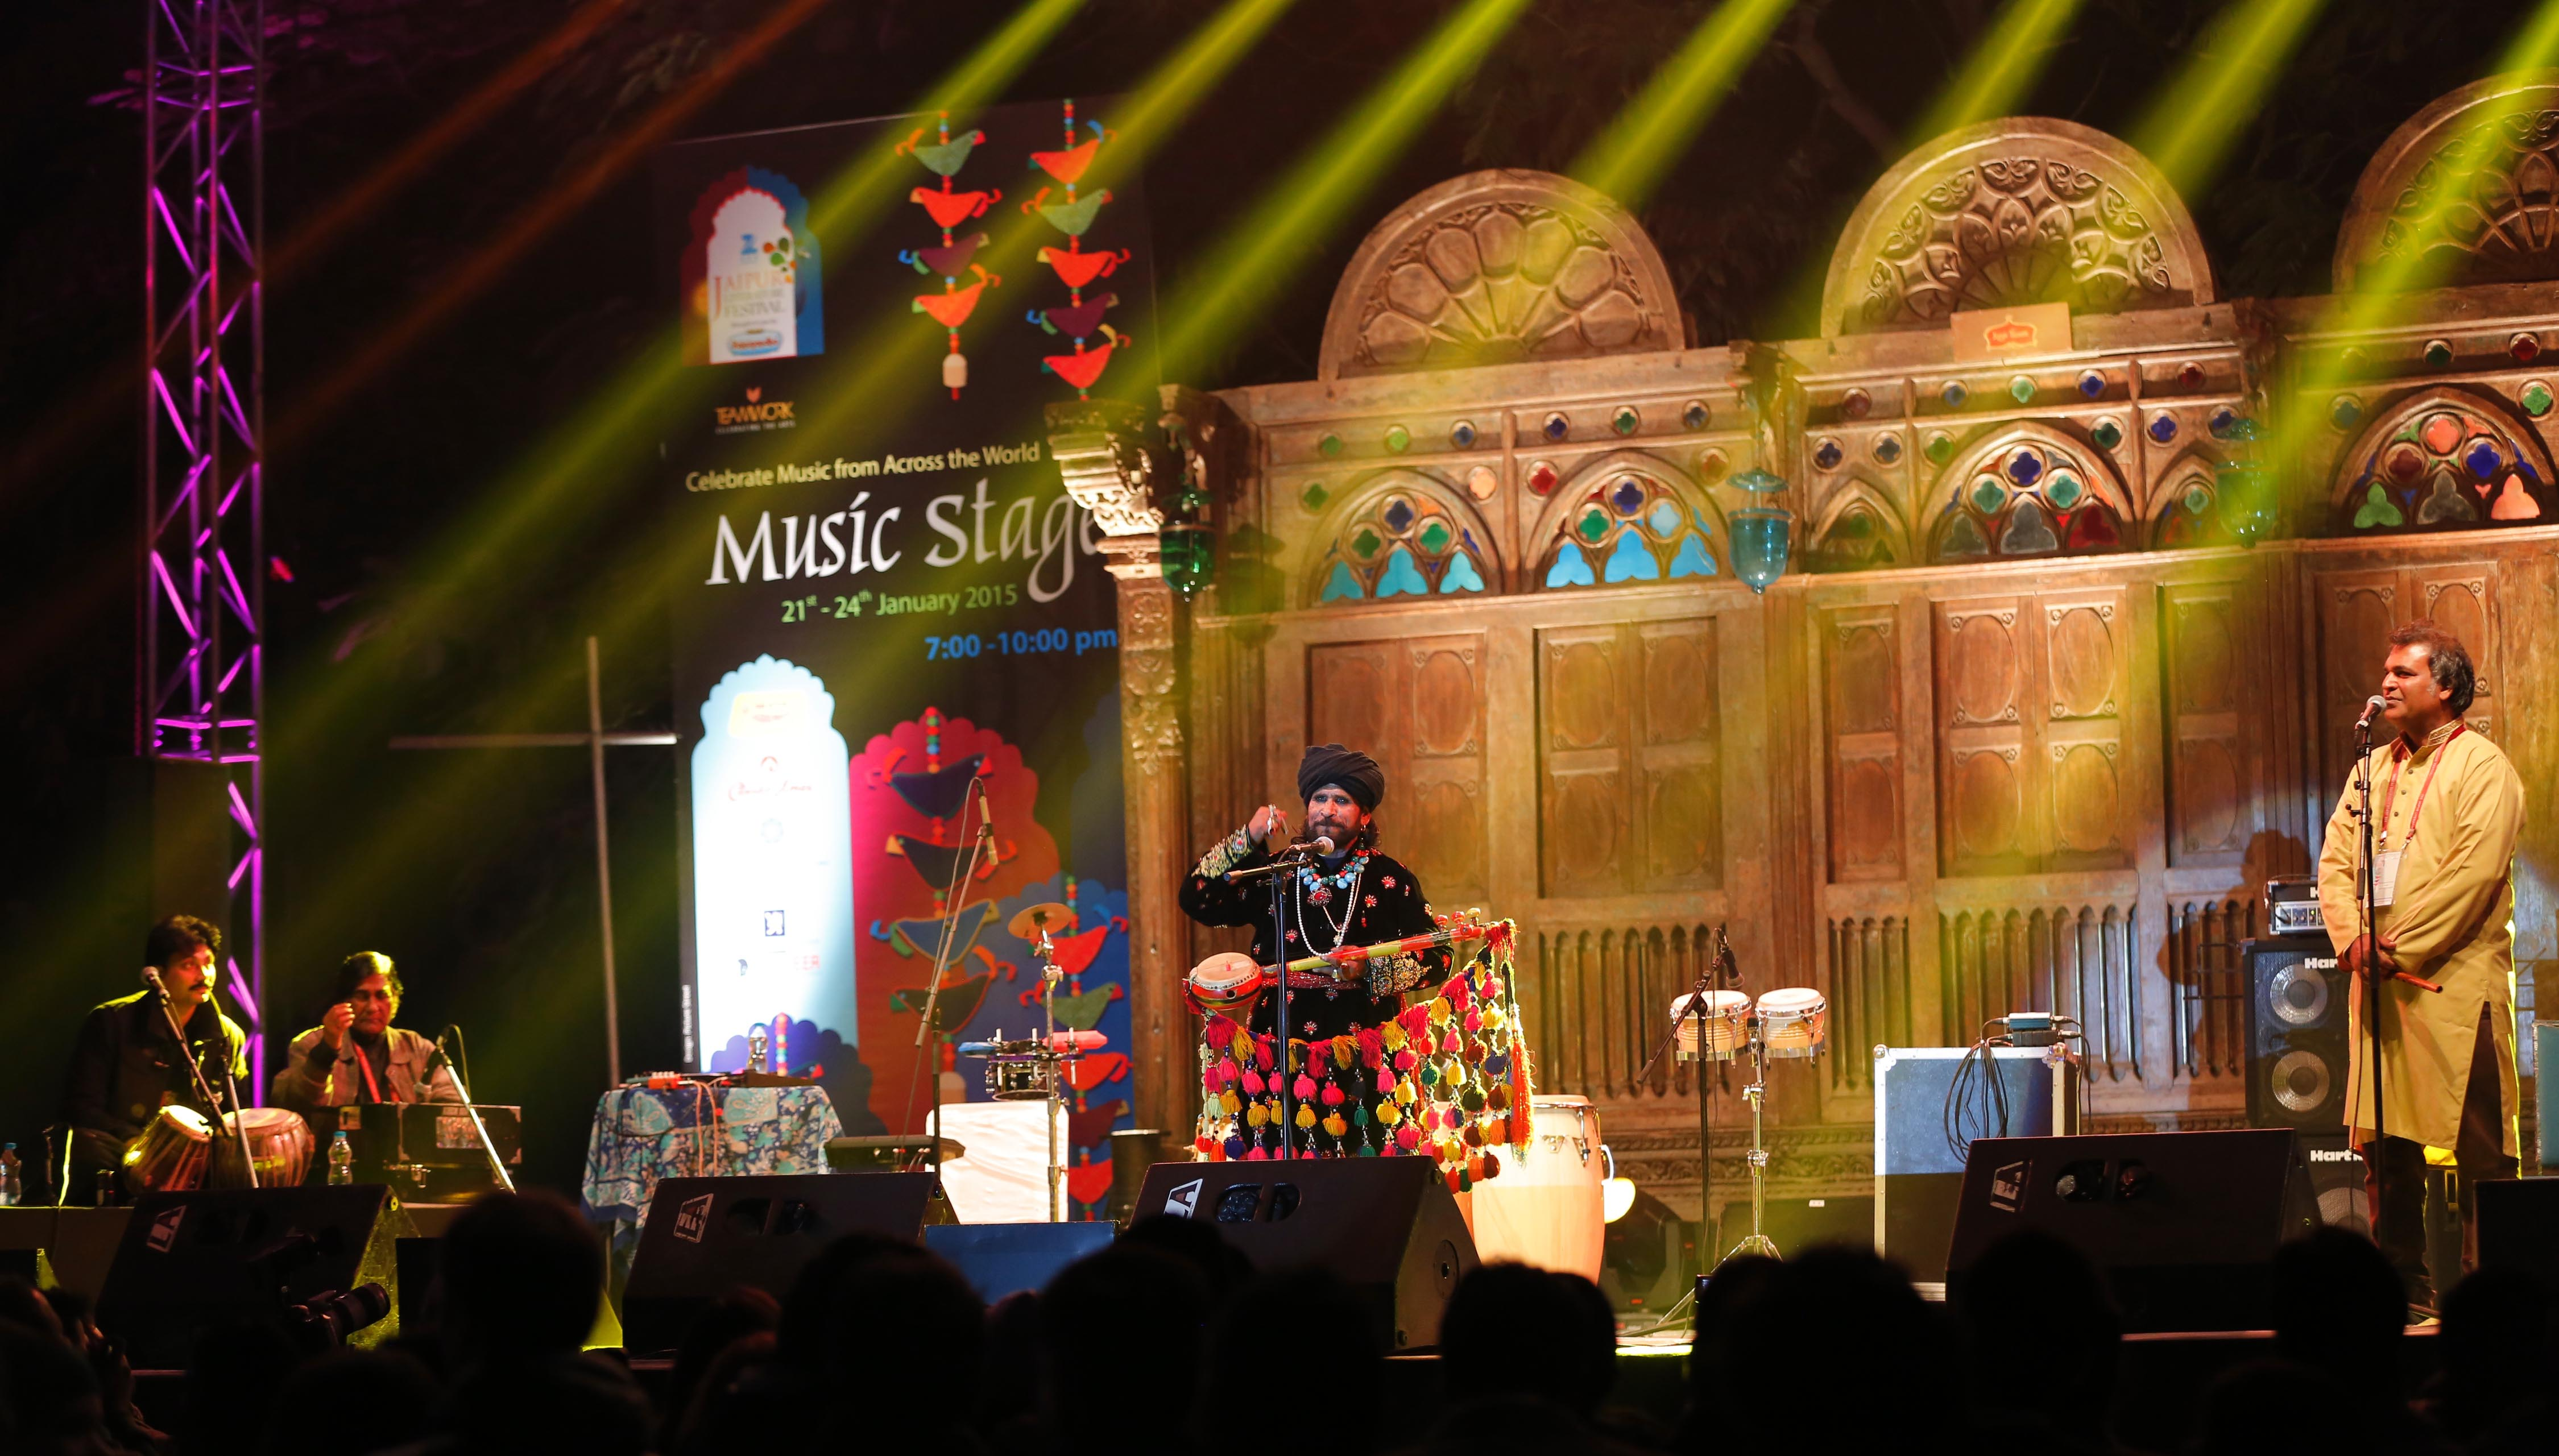 Literature and Music in Amritsar